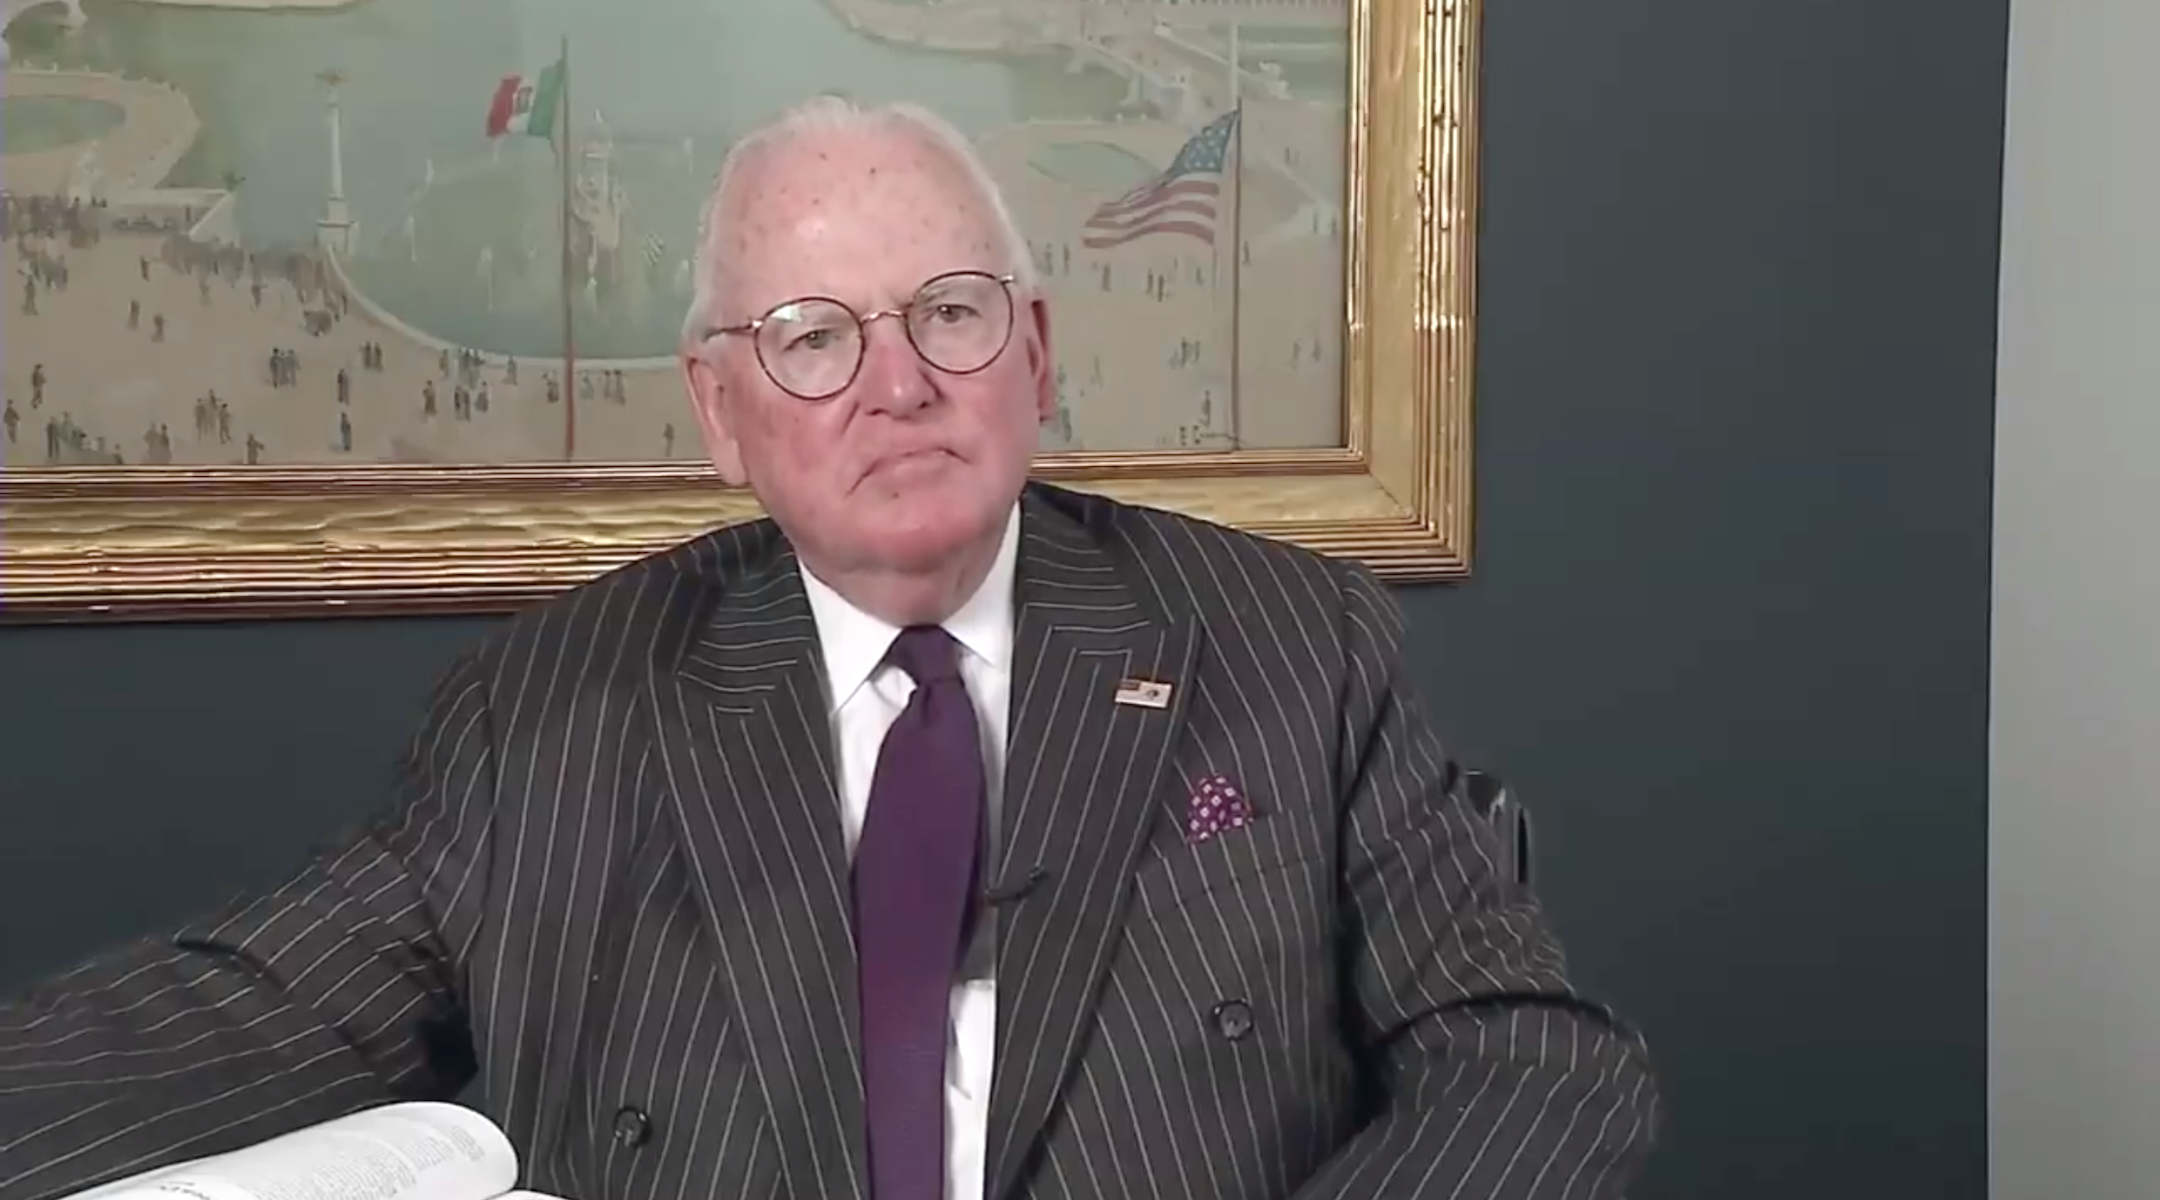 Chicago Alderman Ed Burke, shown here in 2018, is on trial for corruption. (Screen shot from YouTube)